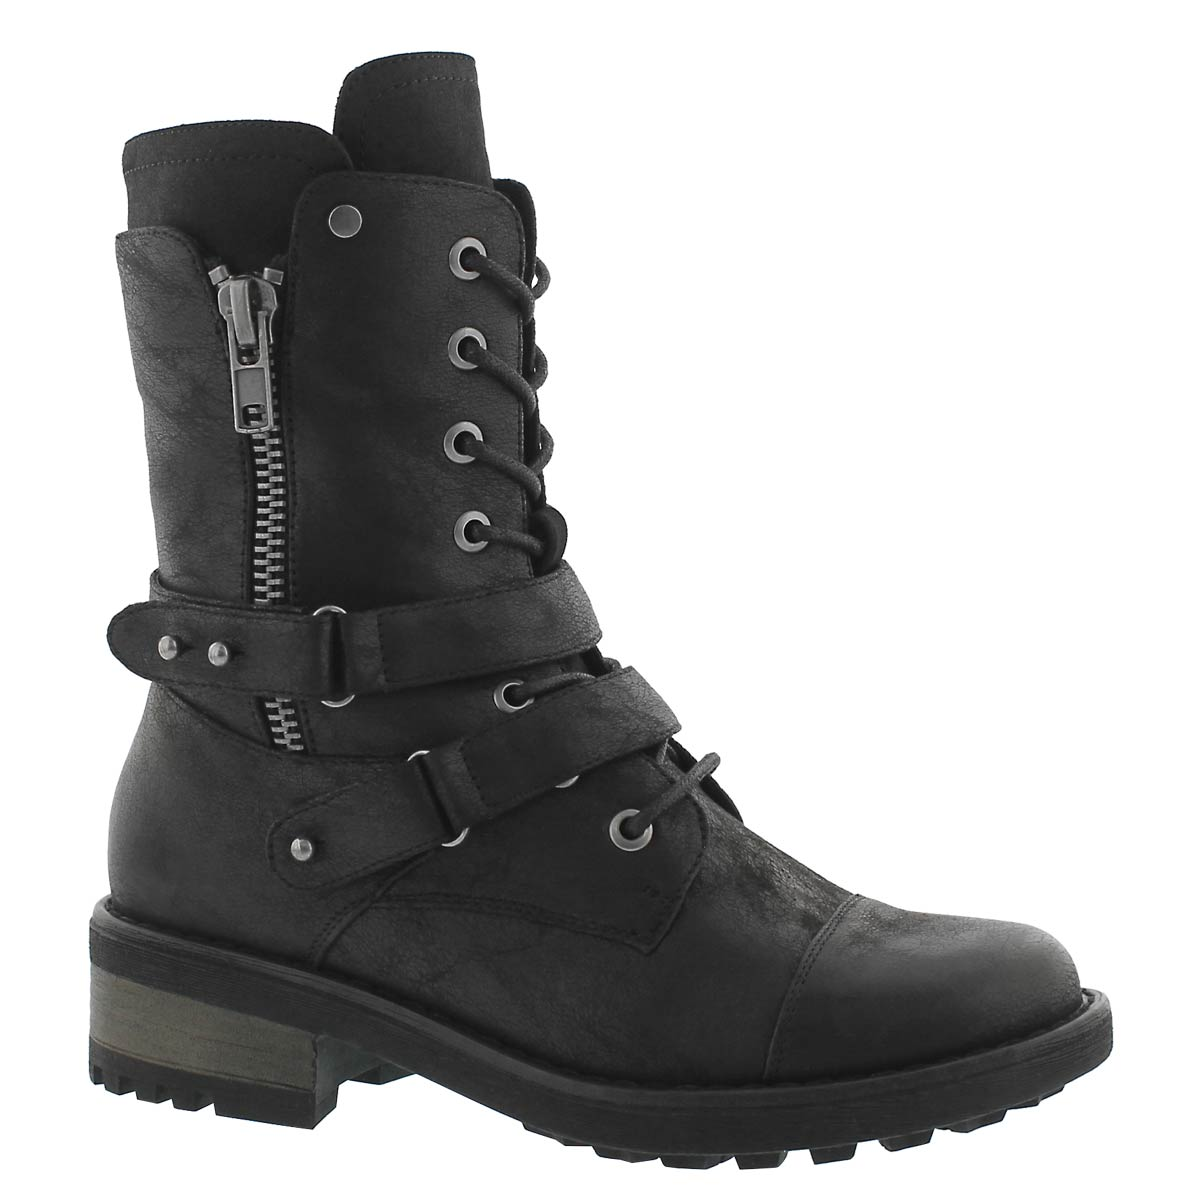 Women's BEX black lace up combat boots